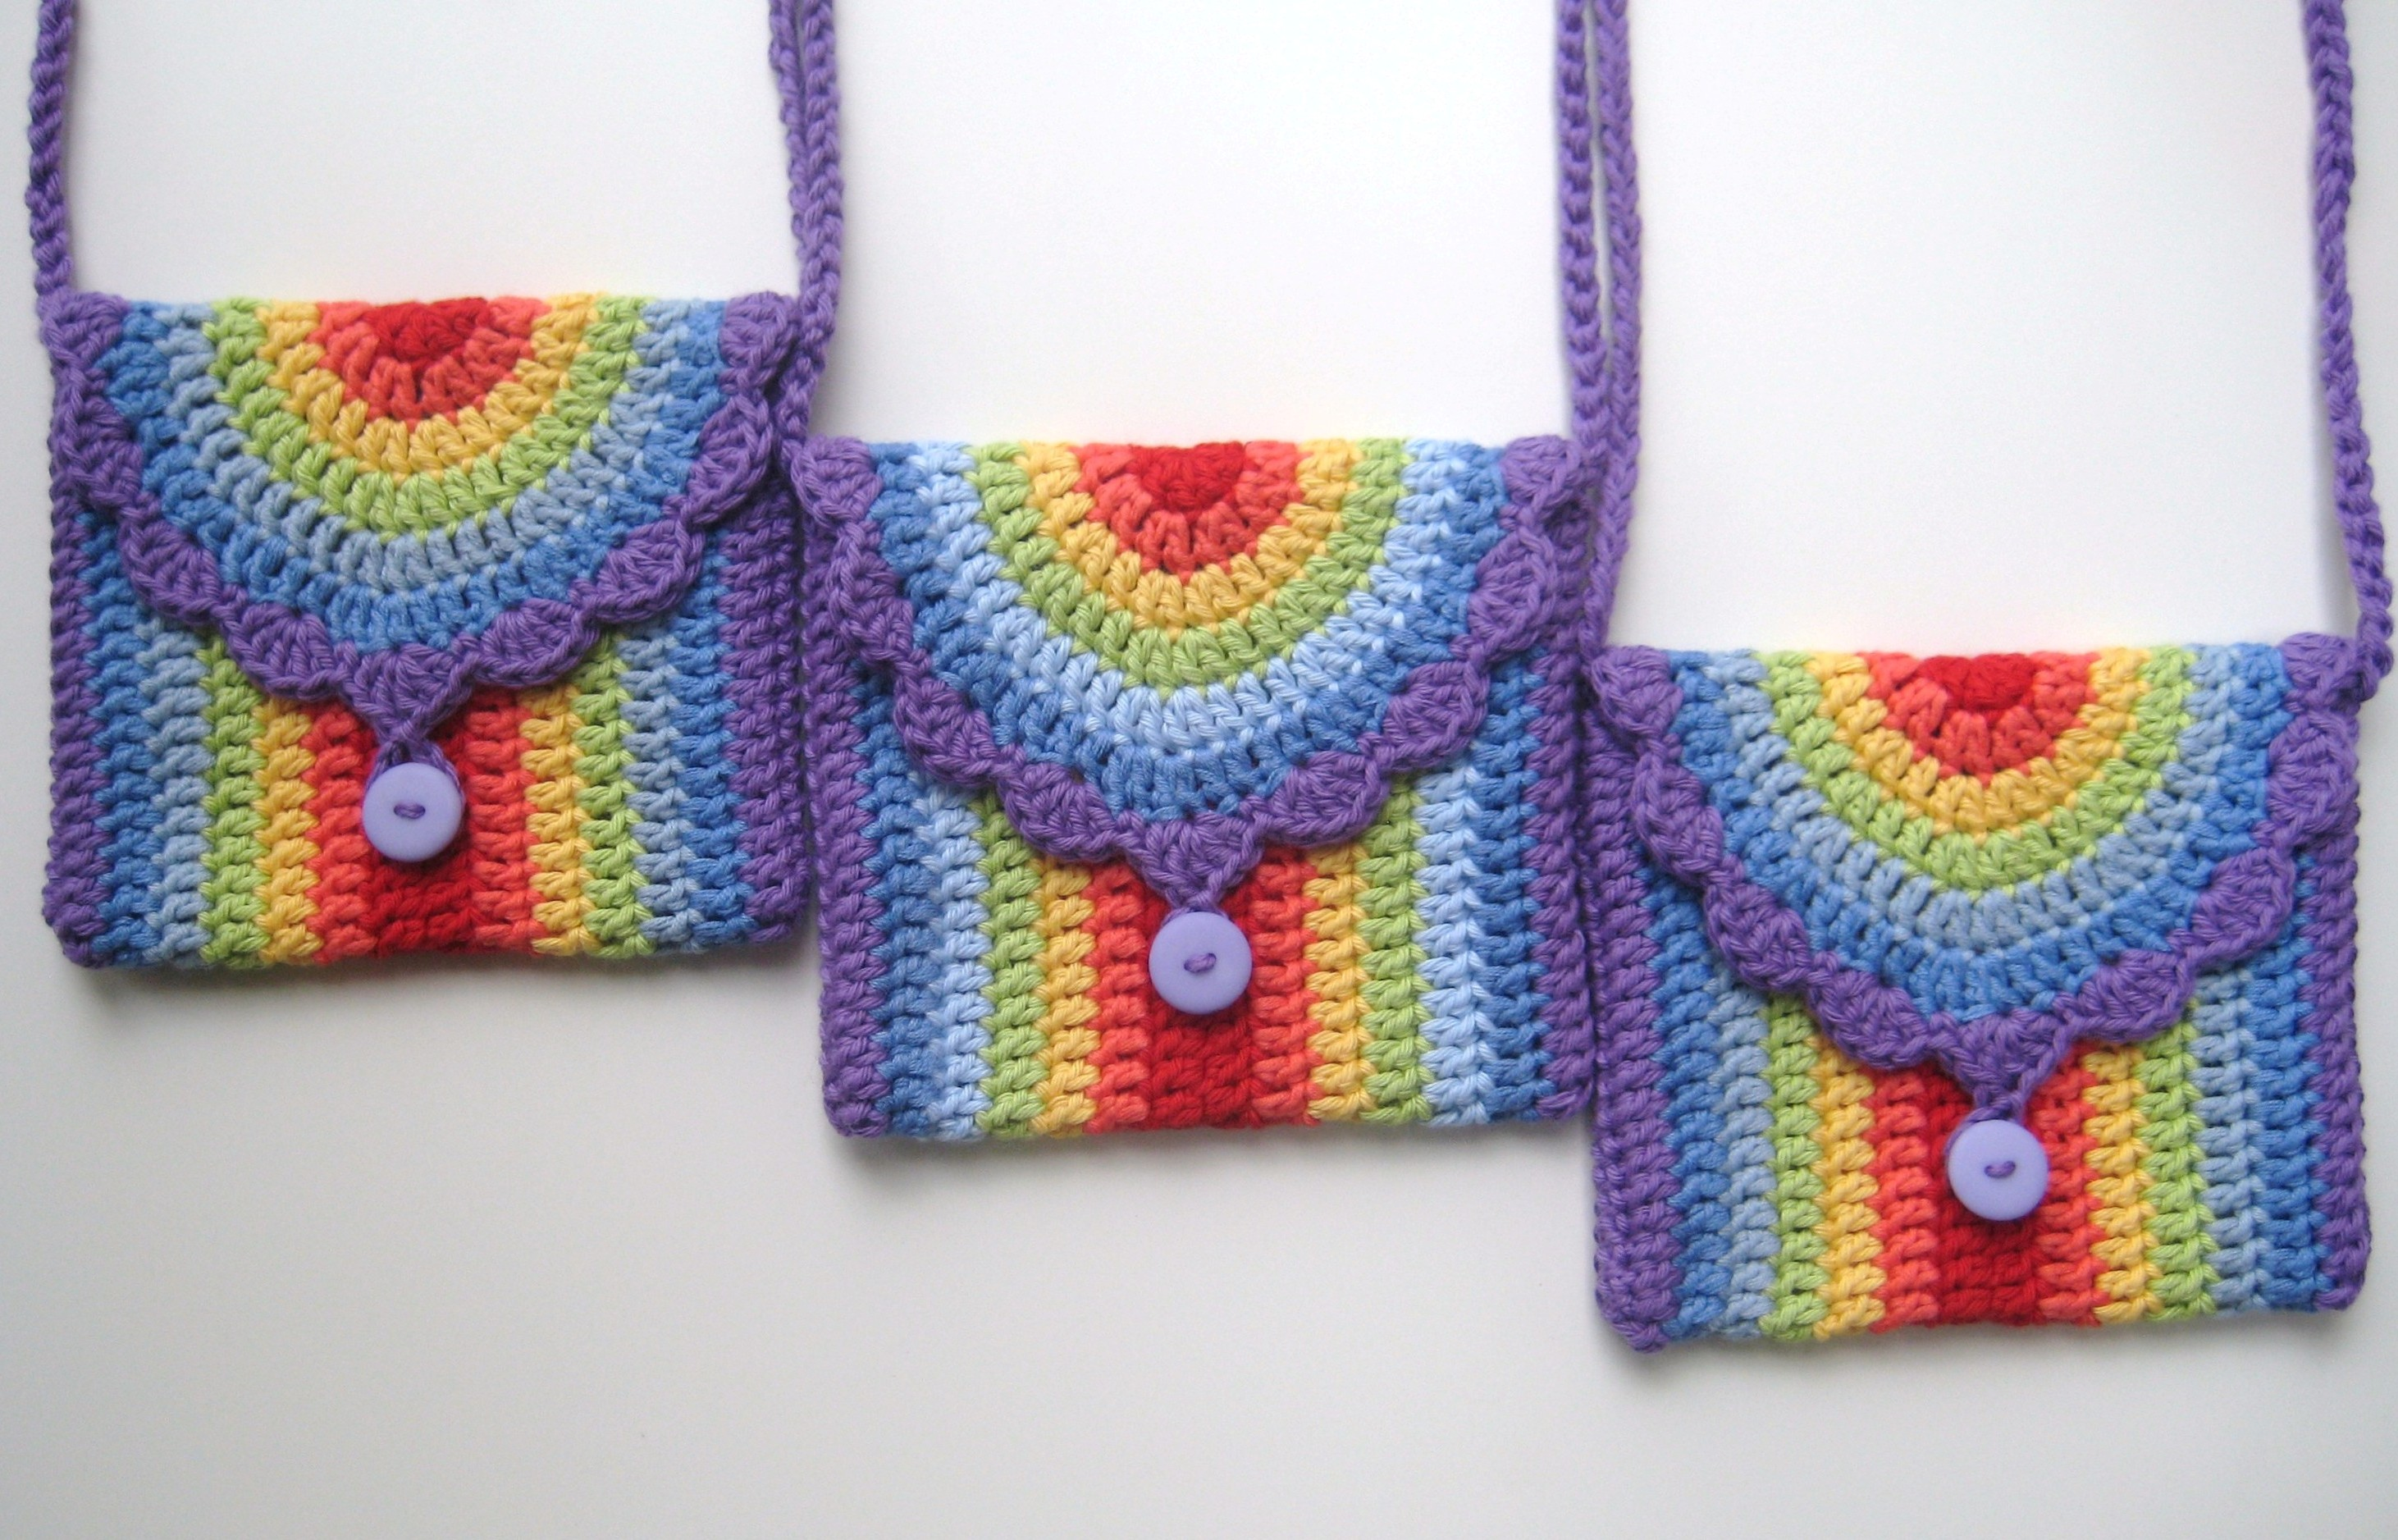 Round bag crochet pattern no3 instant download pdf circle long download crochet bag rainbow bag pattern no14 in both uk and us crochet bankloansurffo Image collections